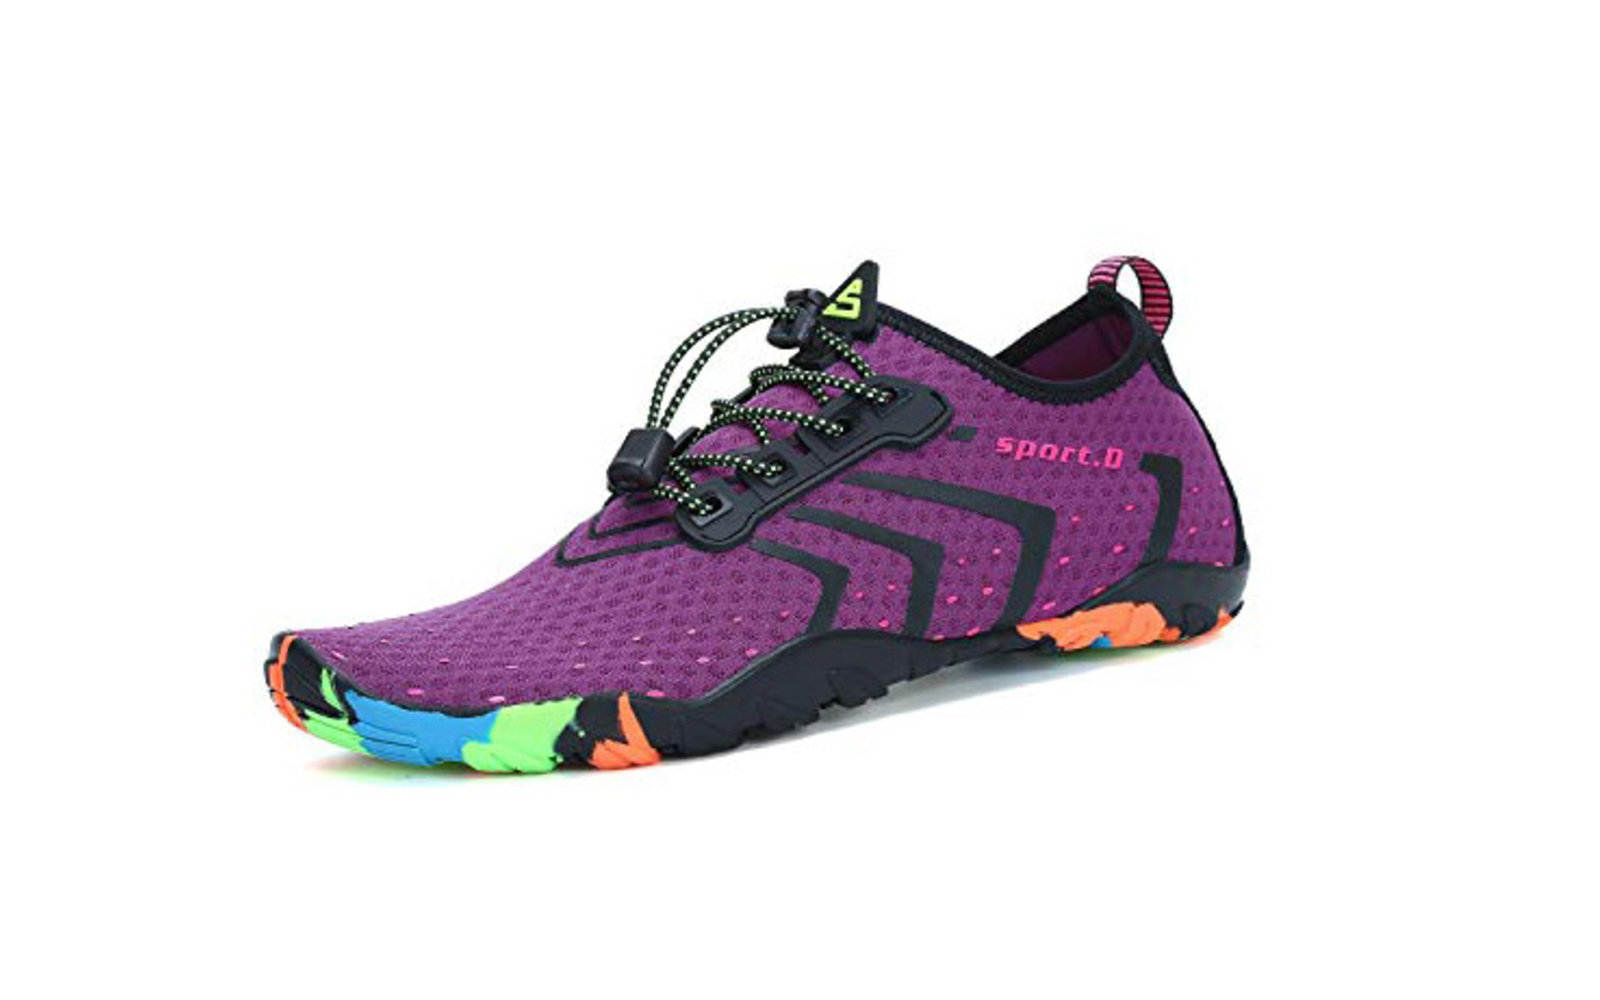 buy online 4a462 890e7 The Best Men's Water Shoes for 2019 | Travel + Leisure